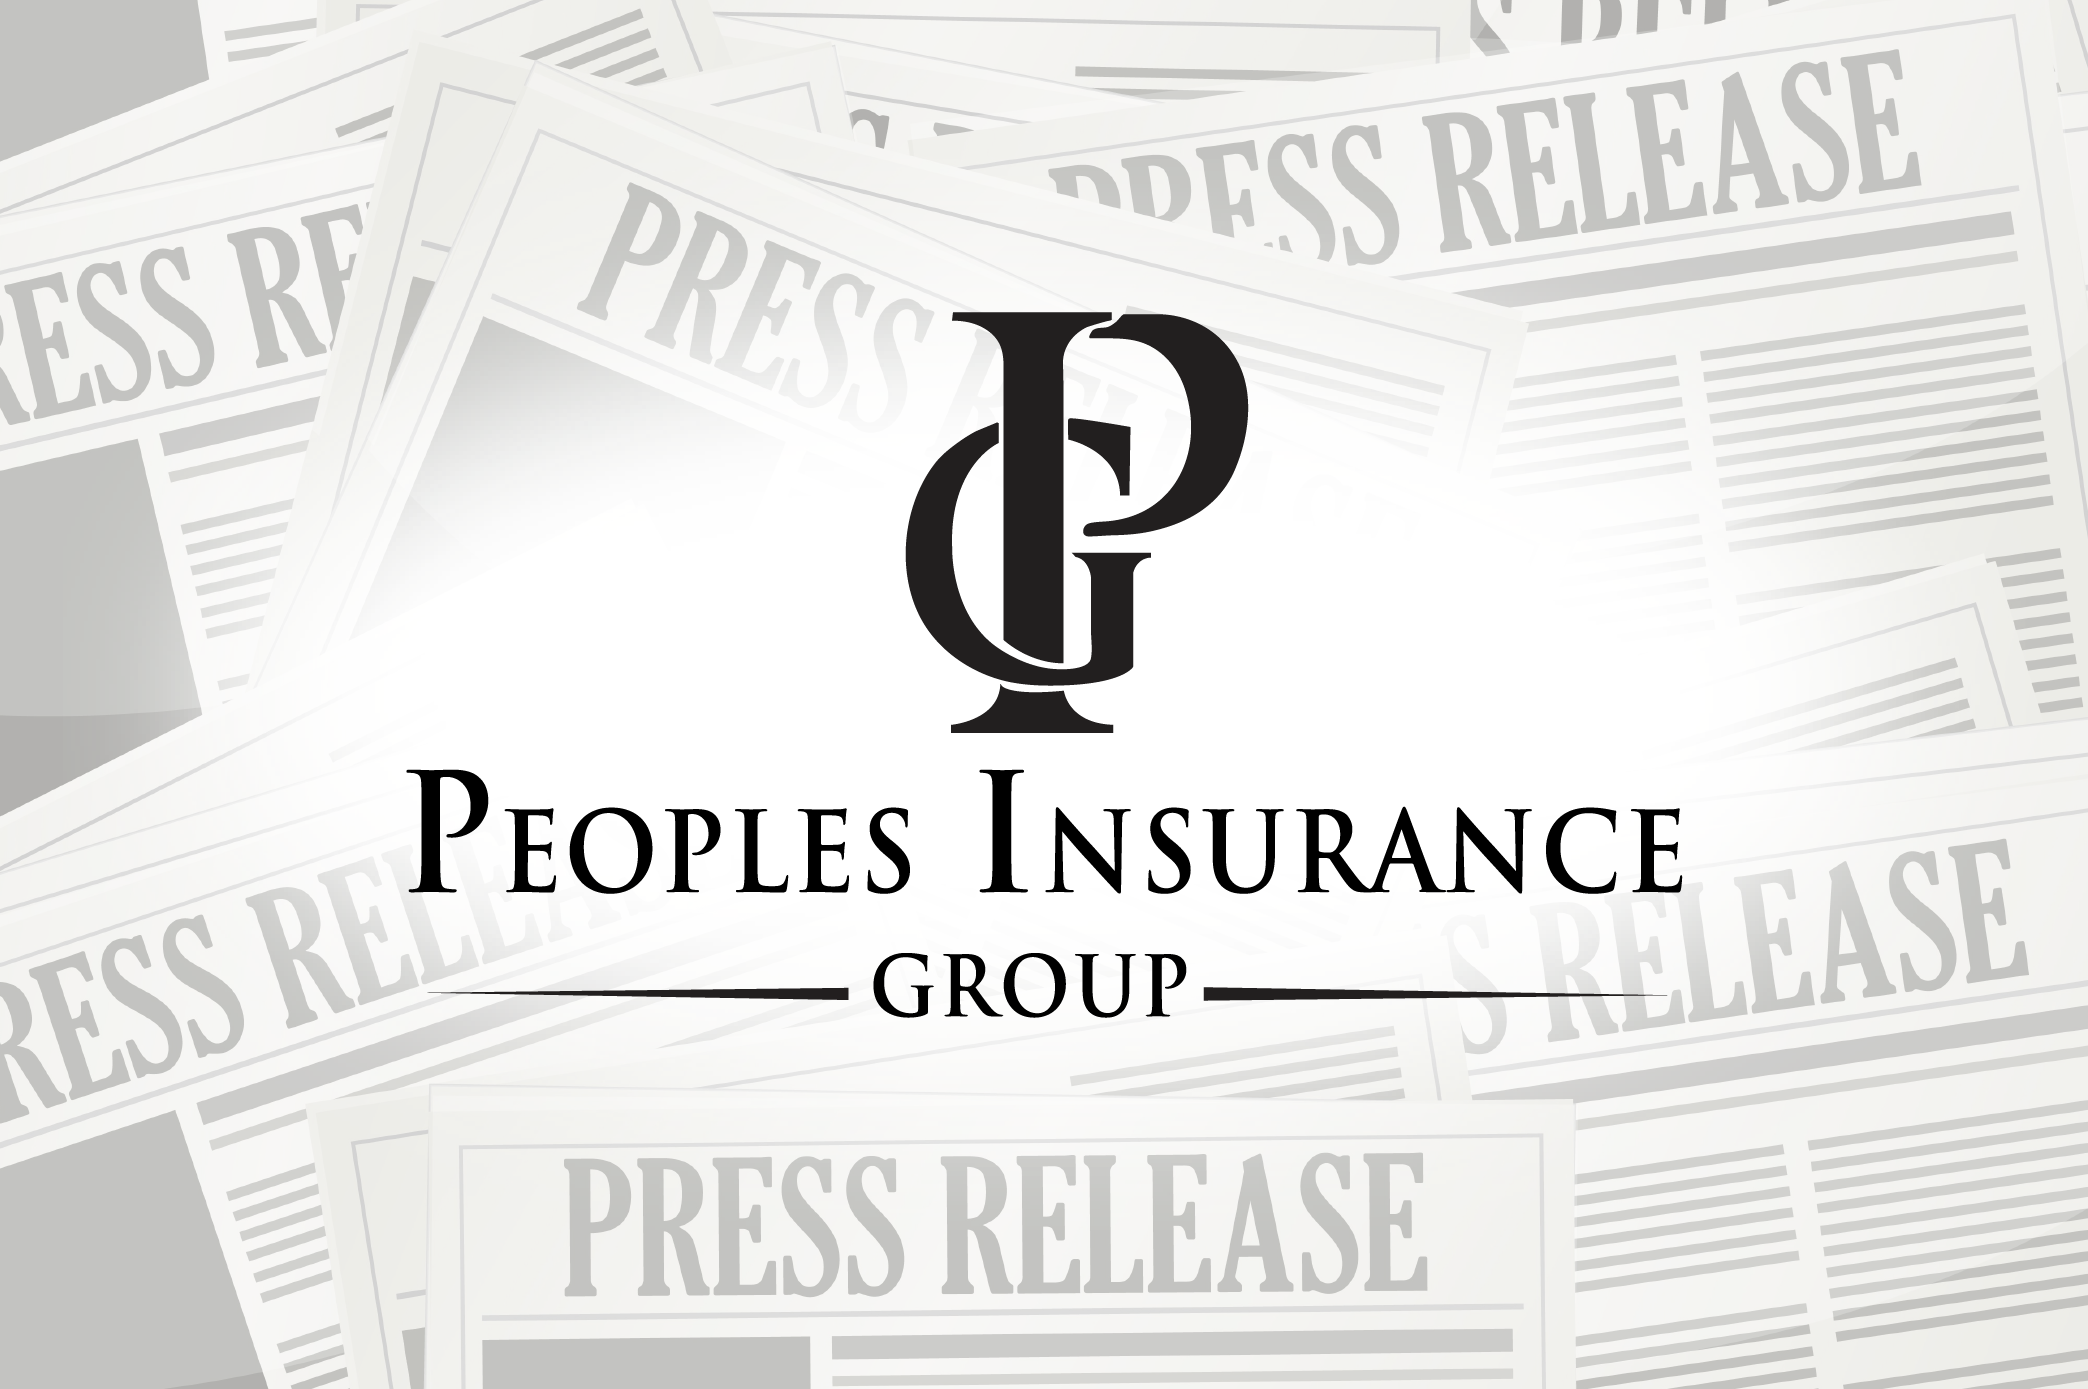 Peoples Insurance Group